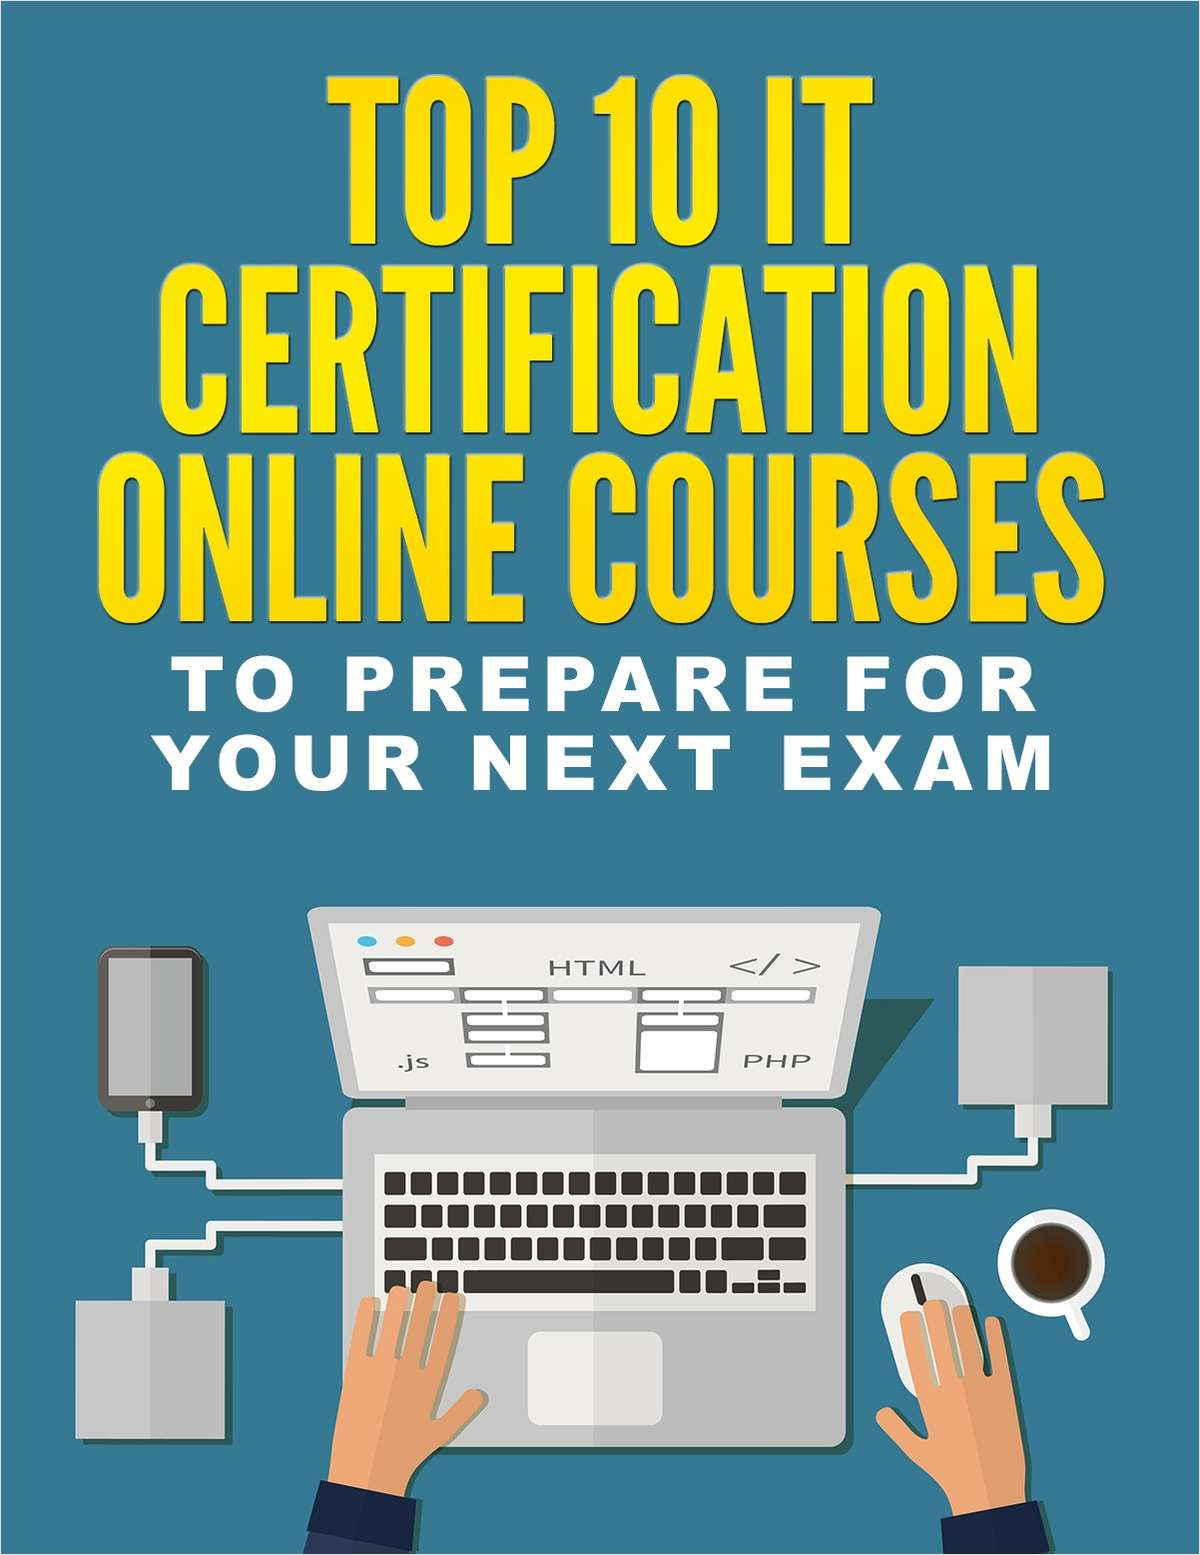 Top 10 It Certification Online Courses To Prepare For Your Next Exam